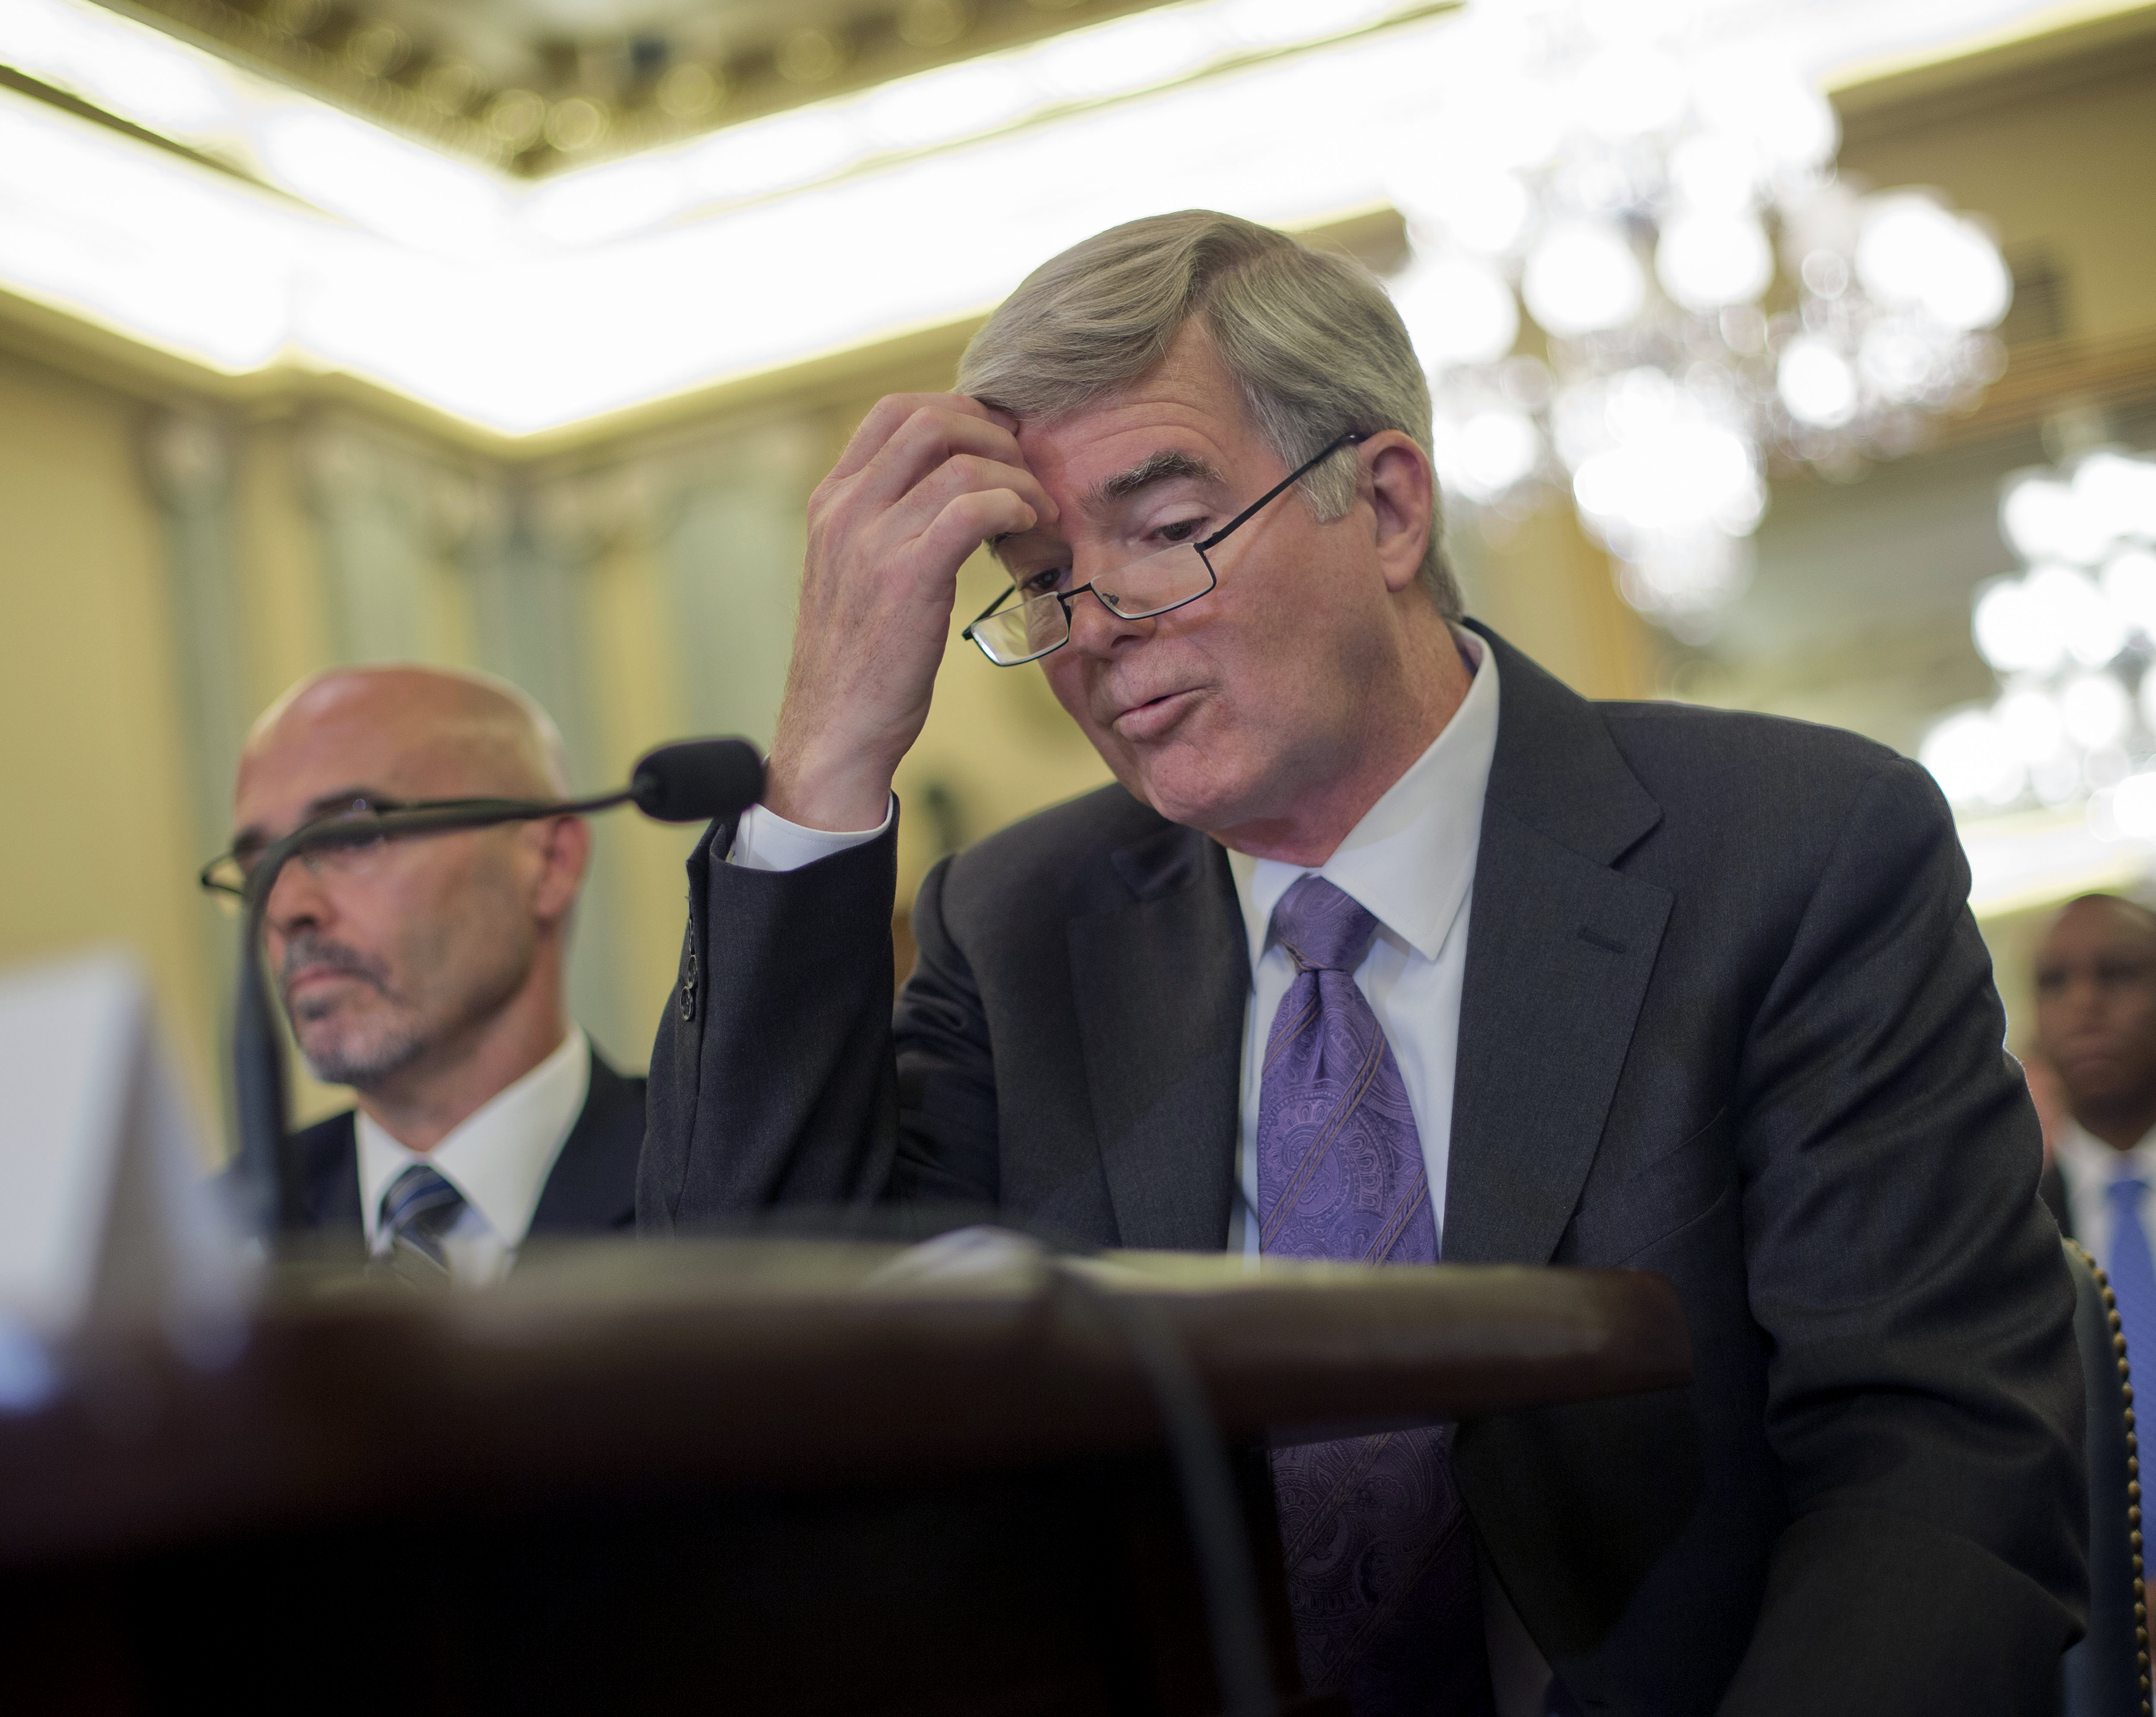 FILE - In this July 9, 2014, file photo, NCAA President Mark Emmert scratches his forehead as he testifies on Capitol Hill in Washington before the Senate Commerce, Science and Transportation hearing on the NCAA's treatment of athletes. At left is Dr. Ric